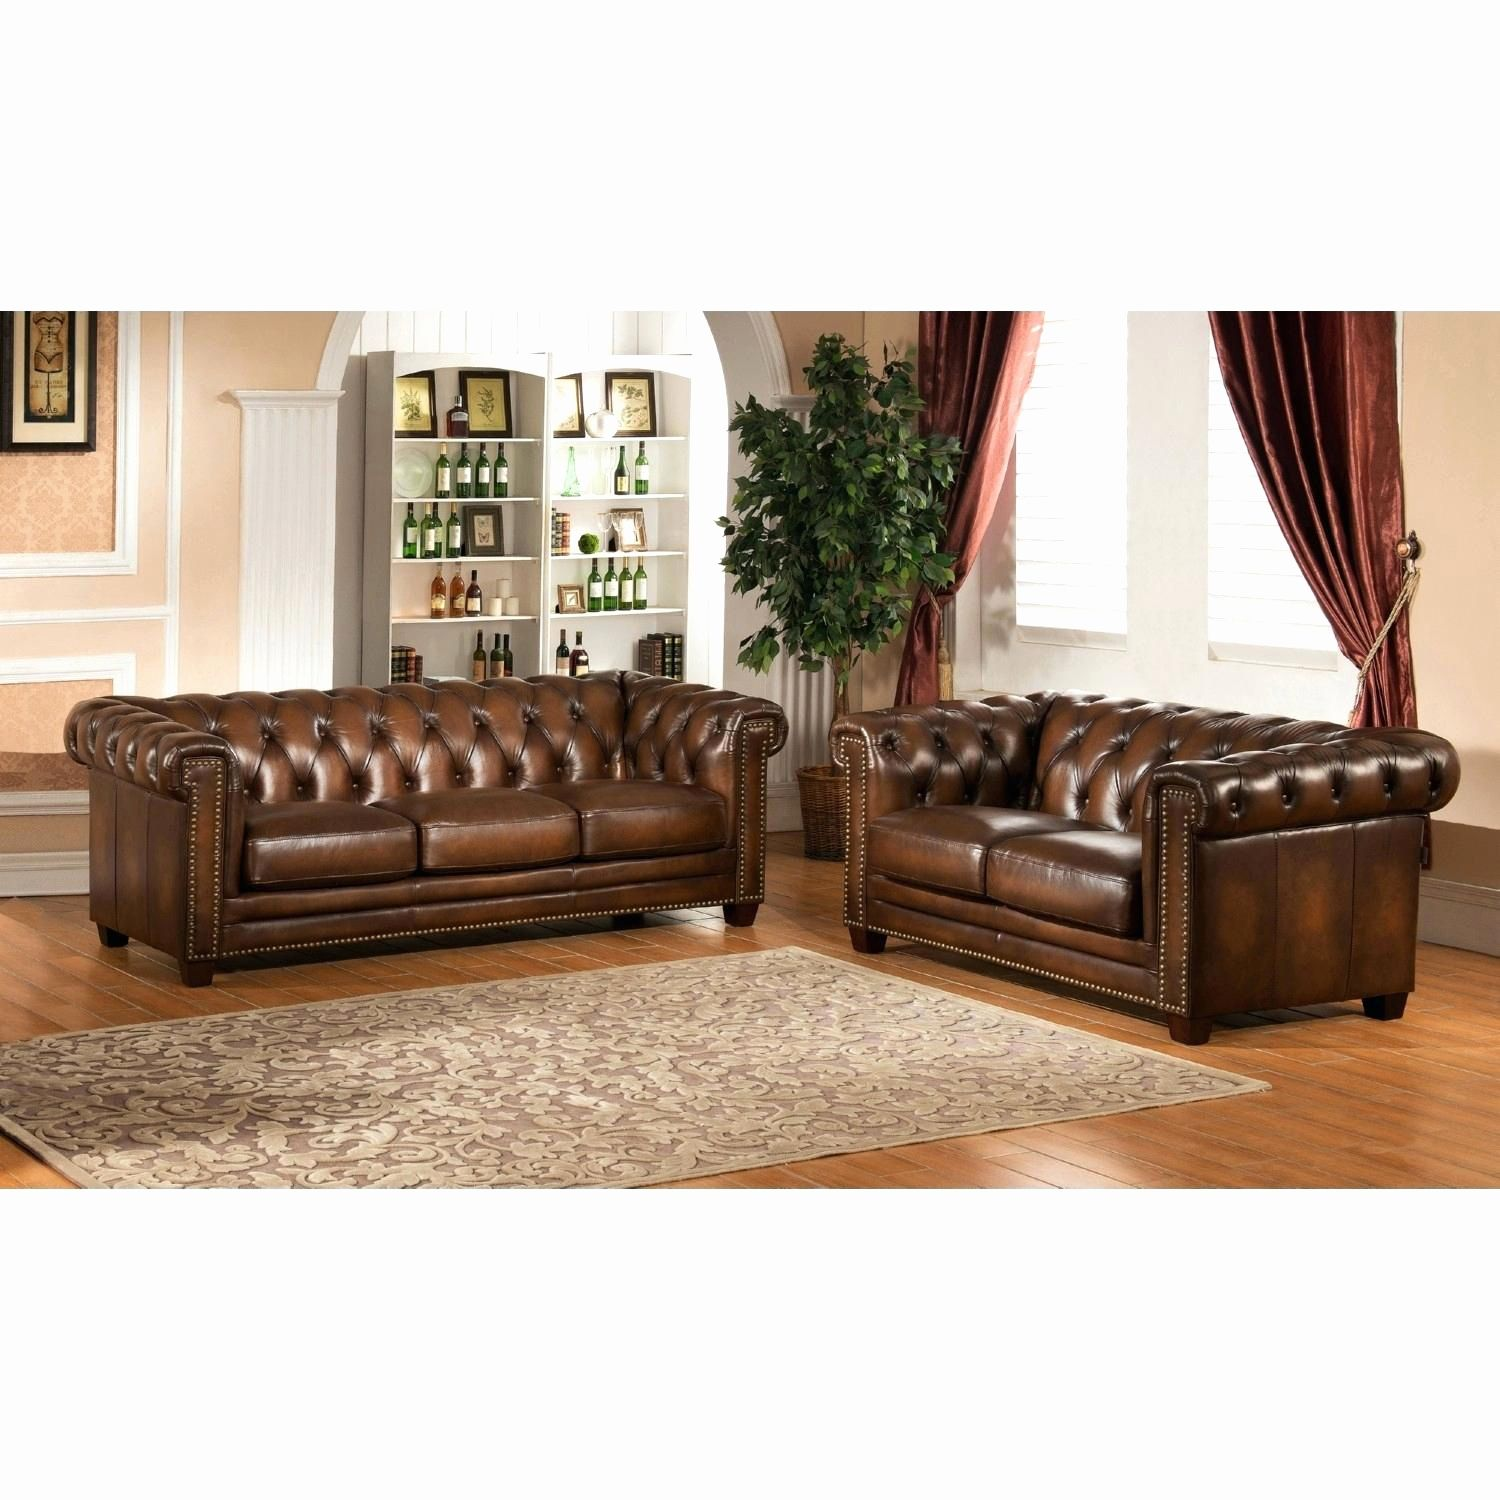 Phenomenal Awesome Leather Sofa Deals Photographs Genuine Leather Sofa Beatyapartments Chair Design Images Beatyapartmentscom